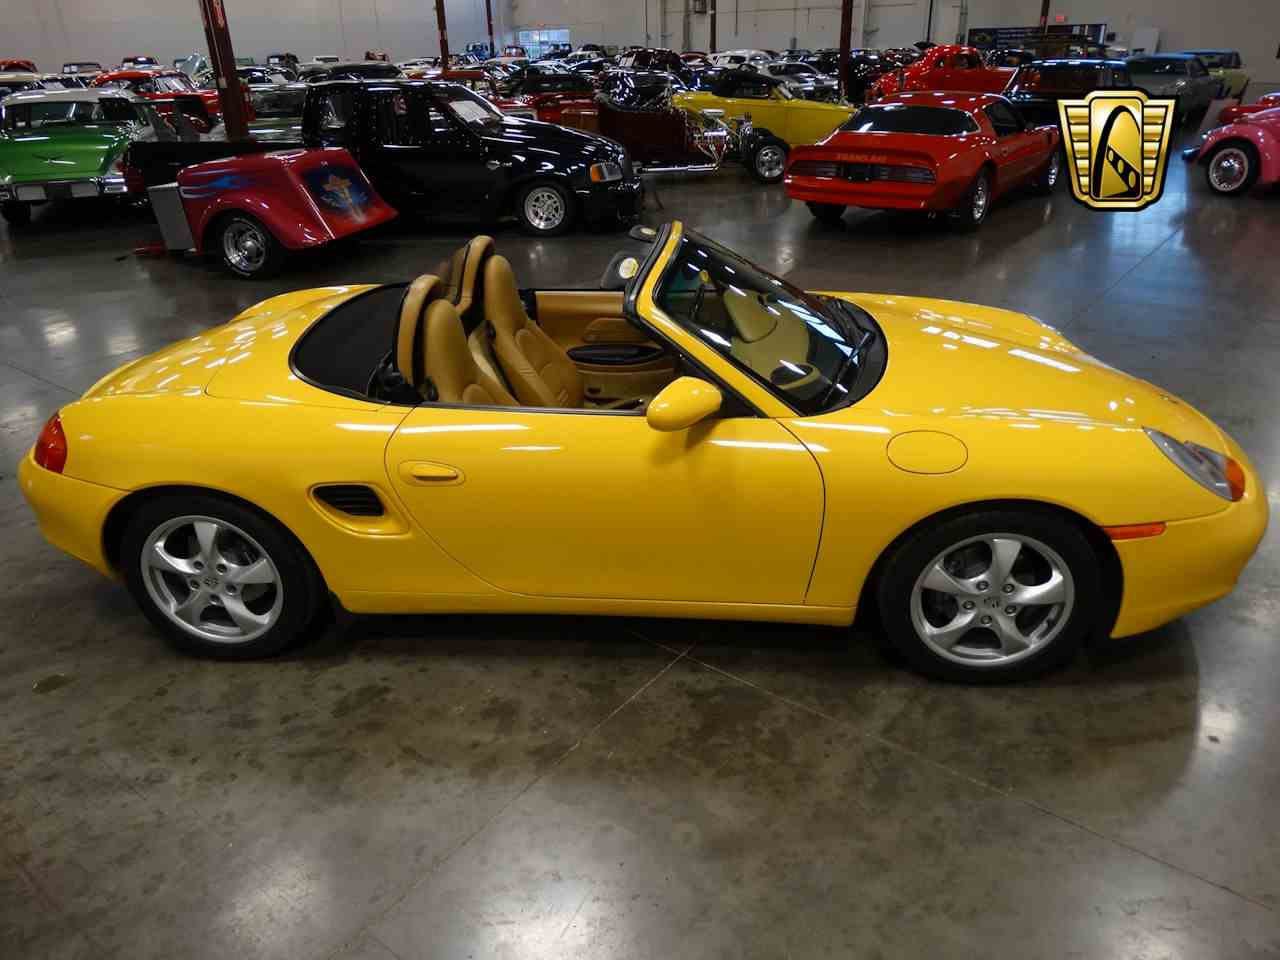 Large Picture of '02 Porsche Boxster located in La Vergne Tennessee - $16,995.00 Offered by Gateway Classic Cars - Nashville - MCYS